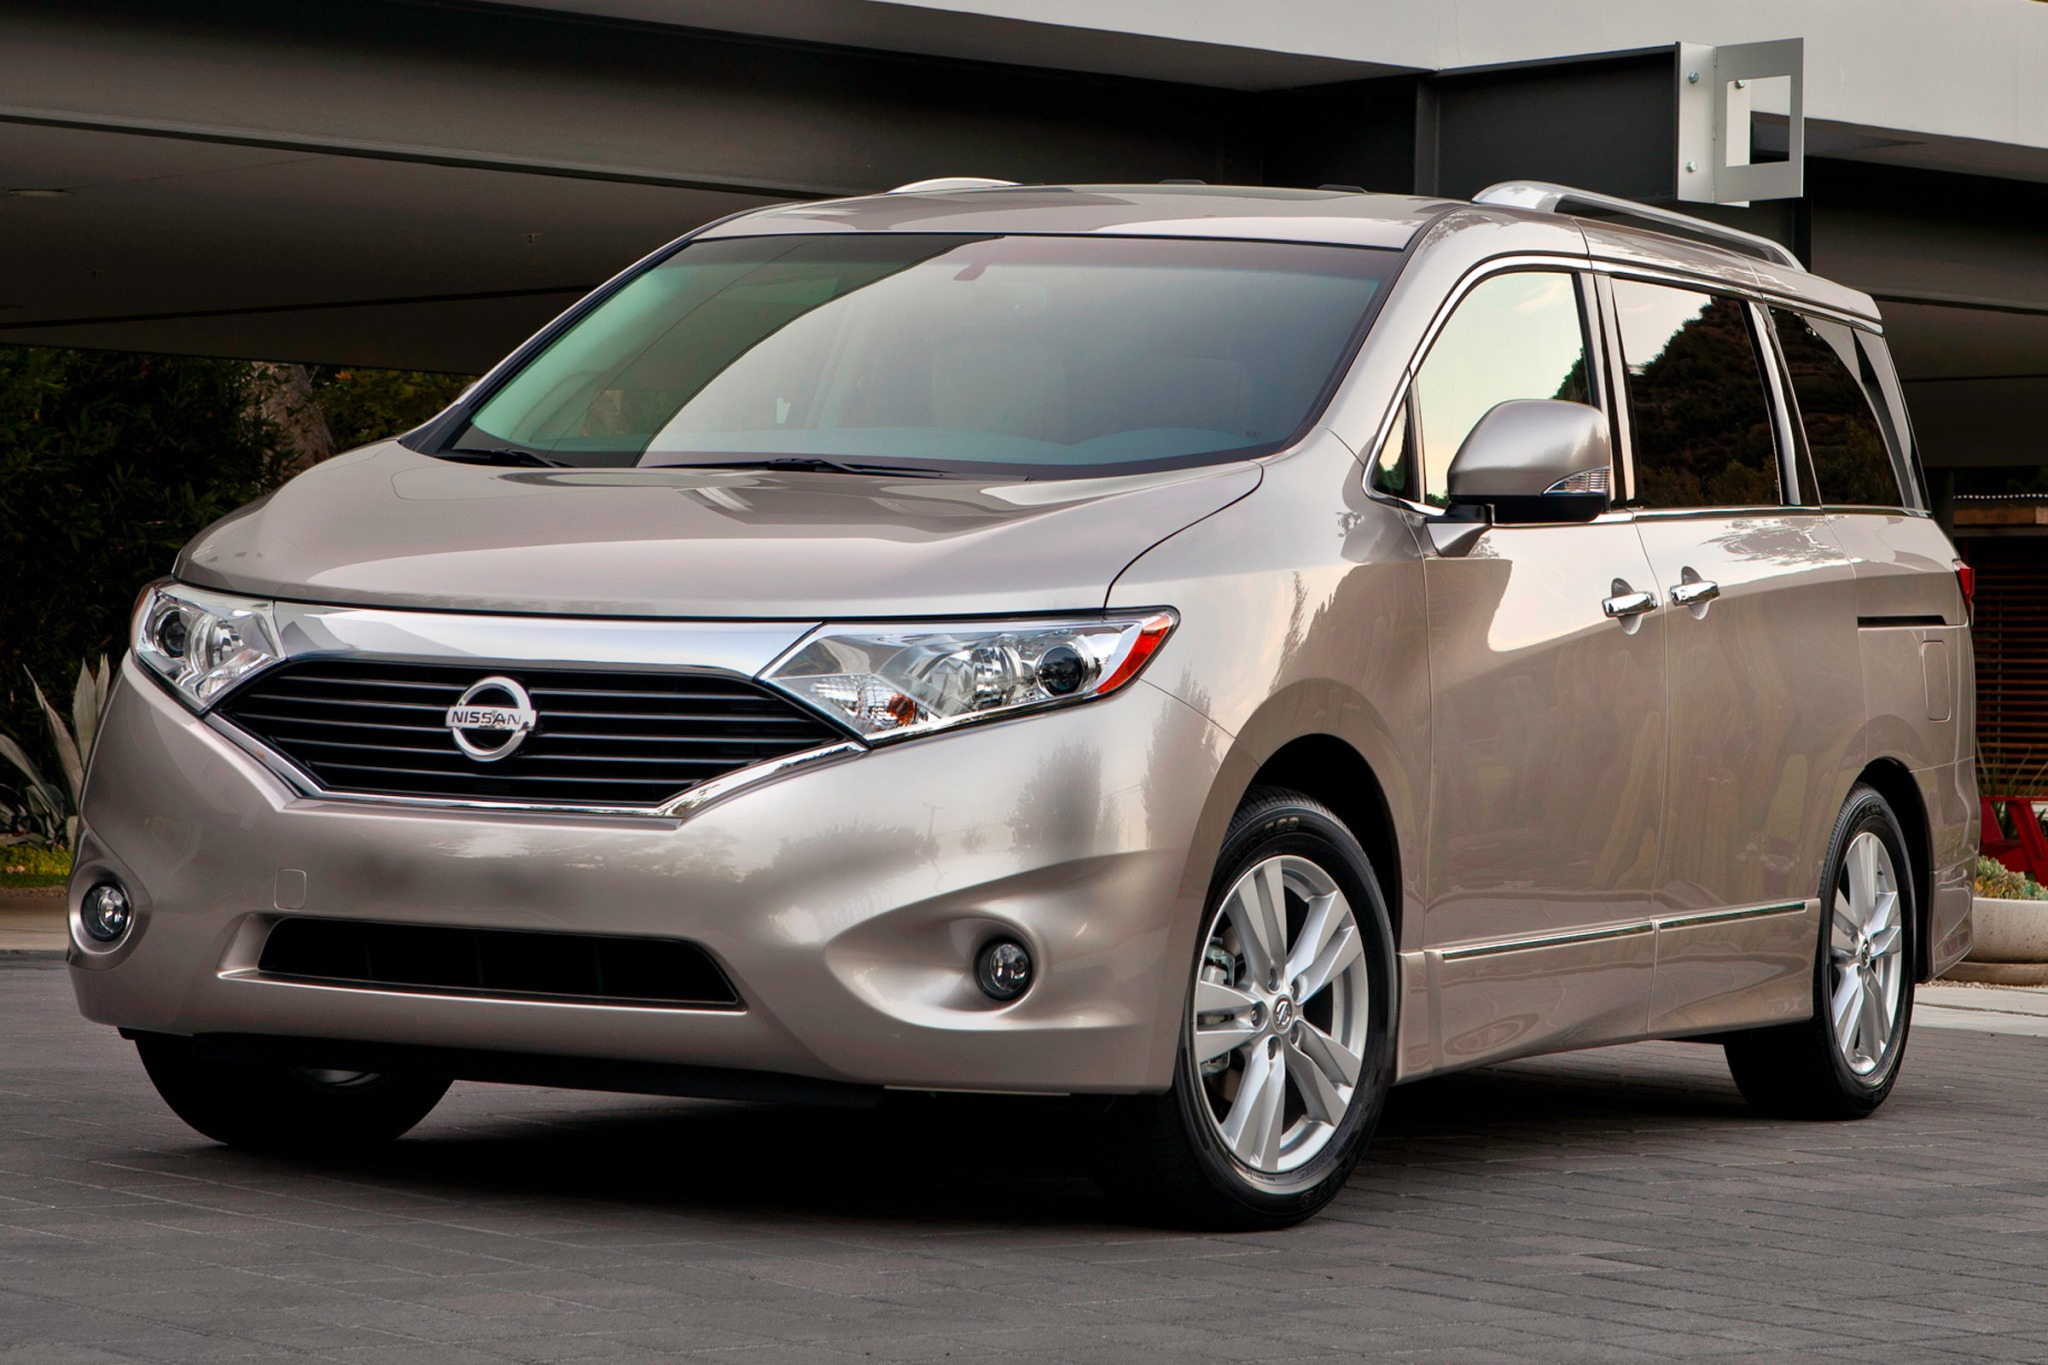 2012 Nissan Quest LE Pass interior #2